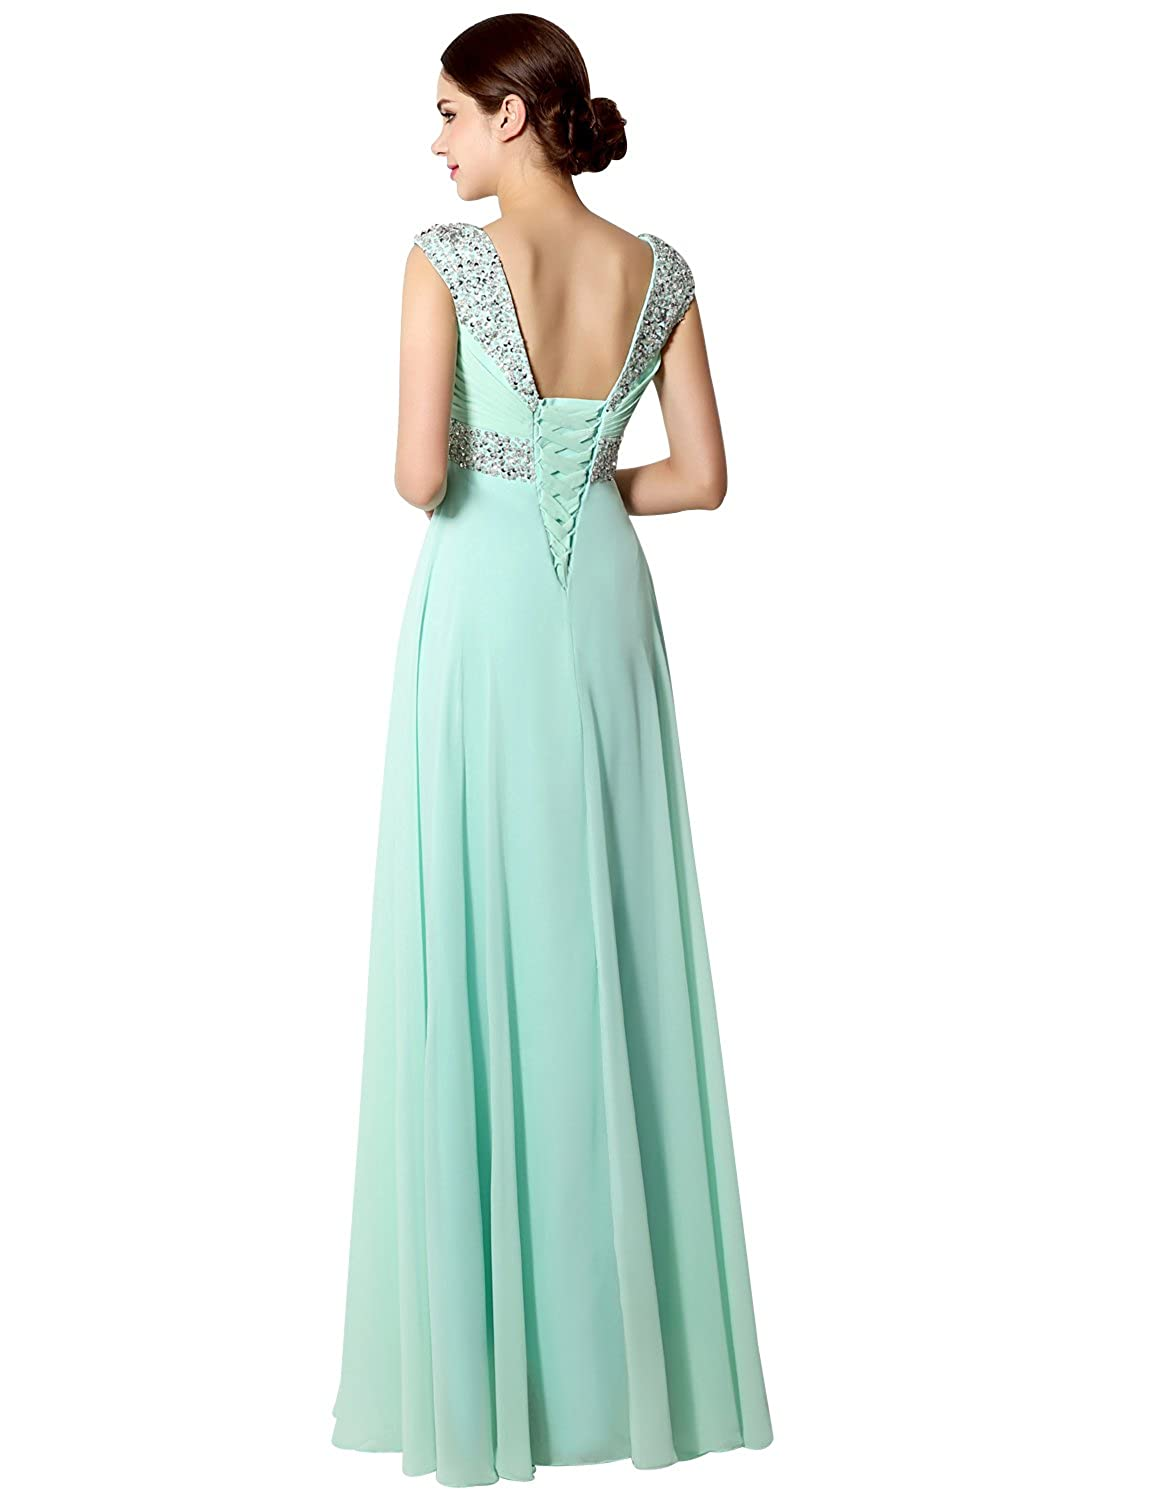 Clearbridal Women's Long Chiffon Prom Evening Dress A-Line Bridesmaid Gown with Crystal Beaded SD179 Sky Blue UK30